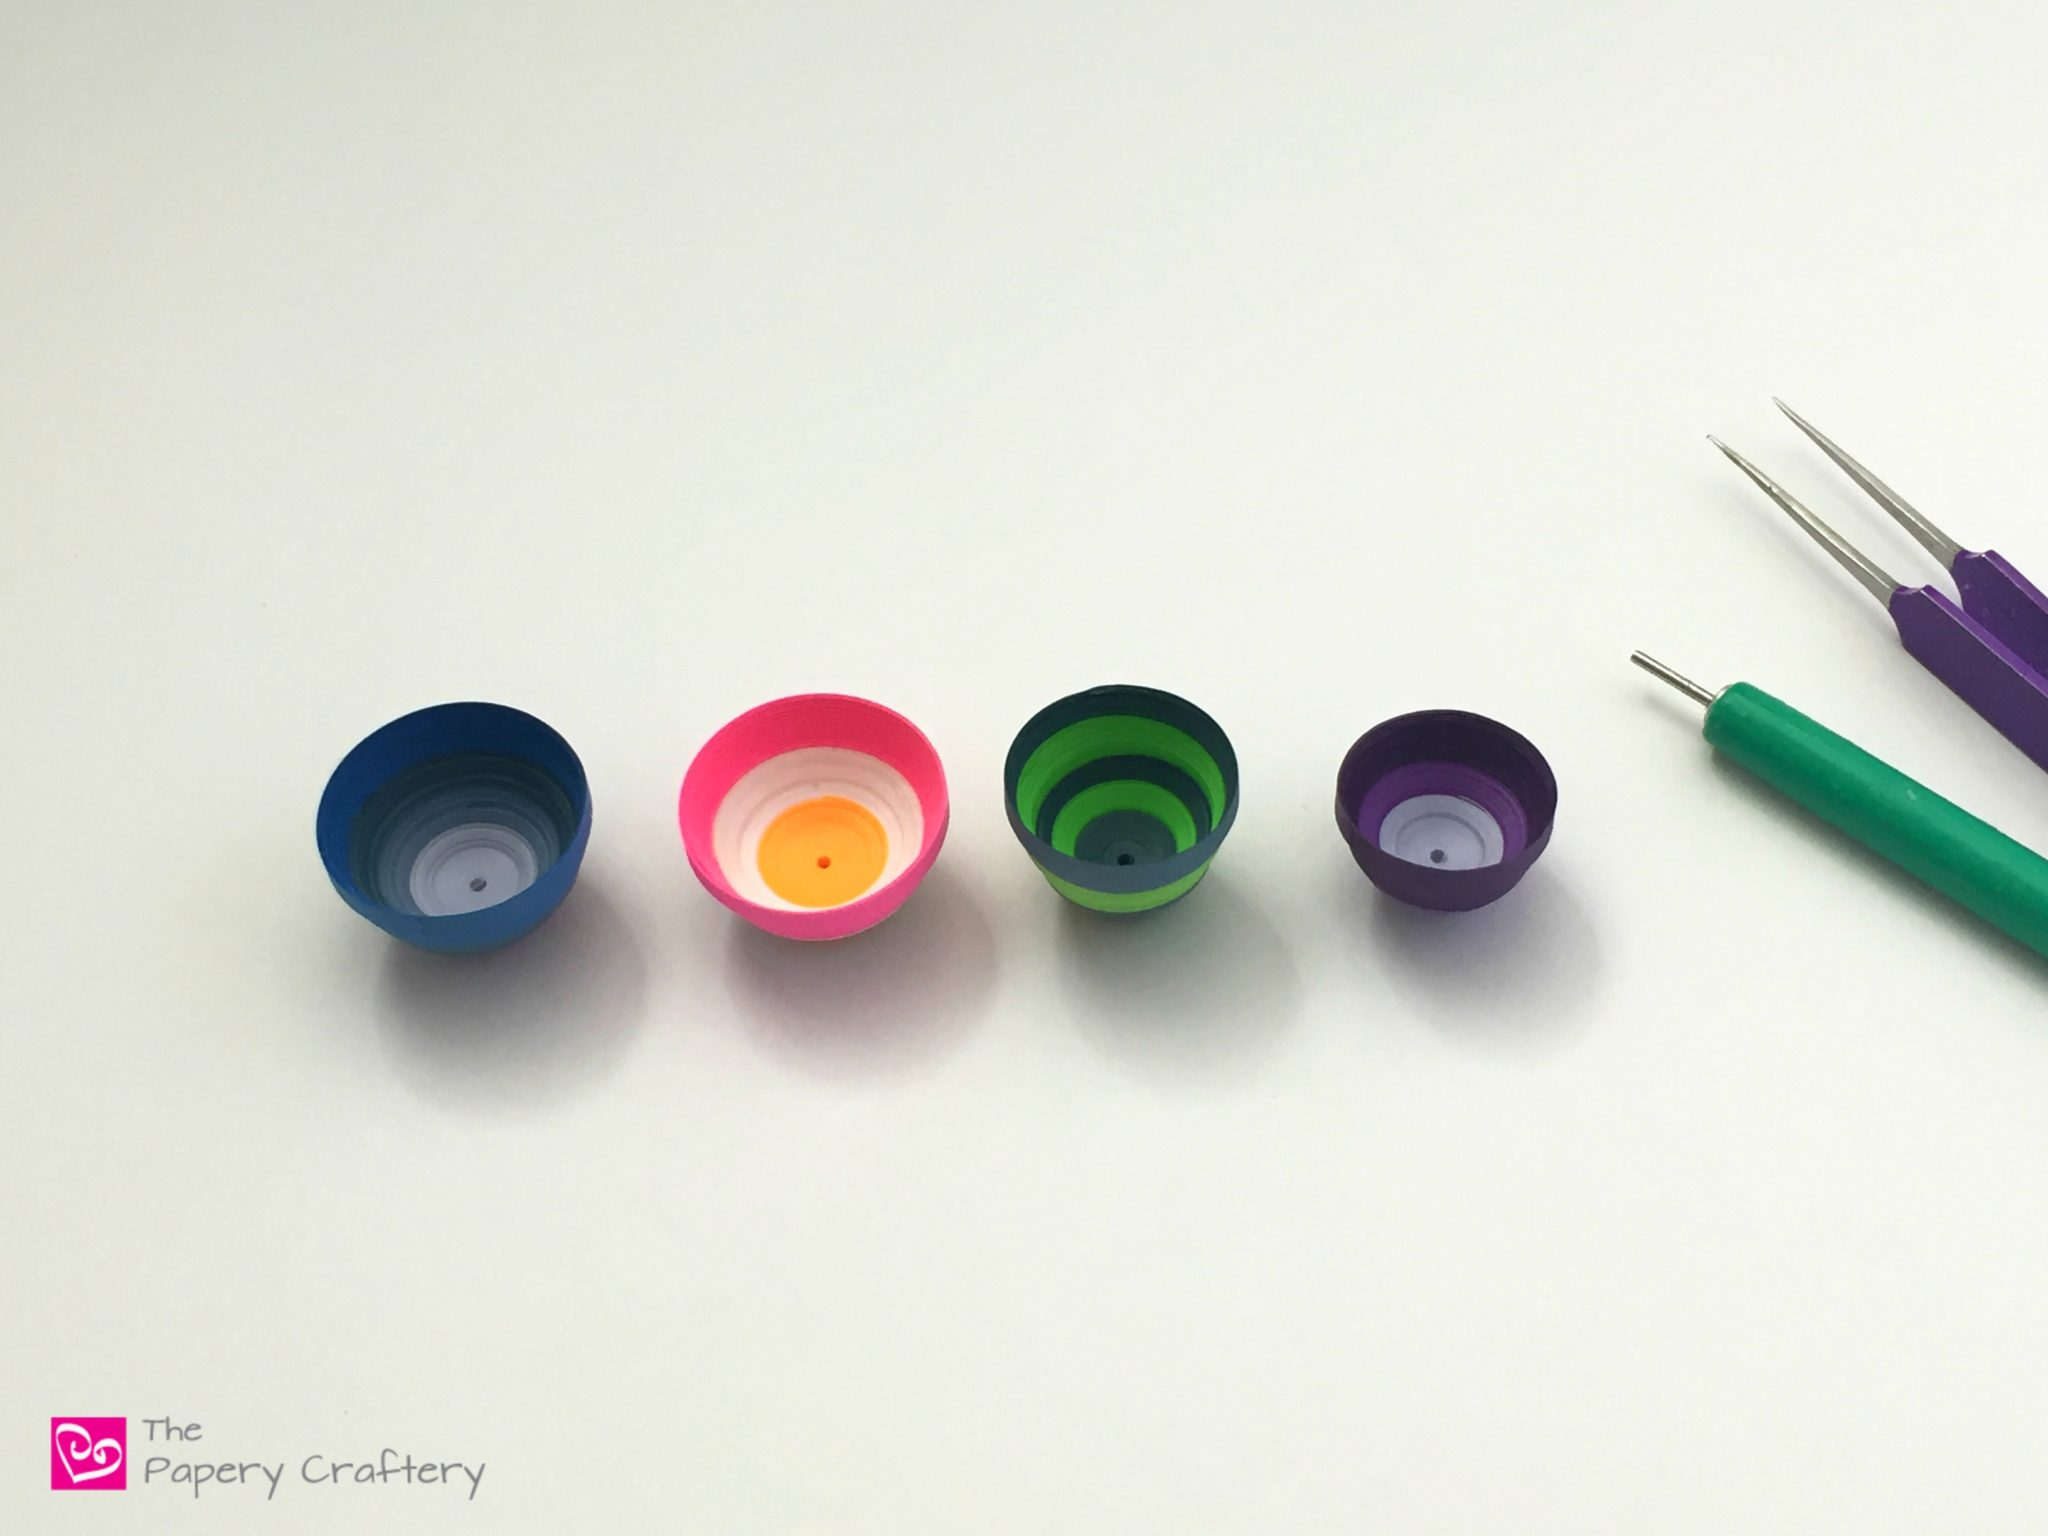 How to Use a Quilling Paper Mold for 3D Domes - Start making mini domes and bowls with a mold -- www.thepaperycraftery.com